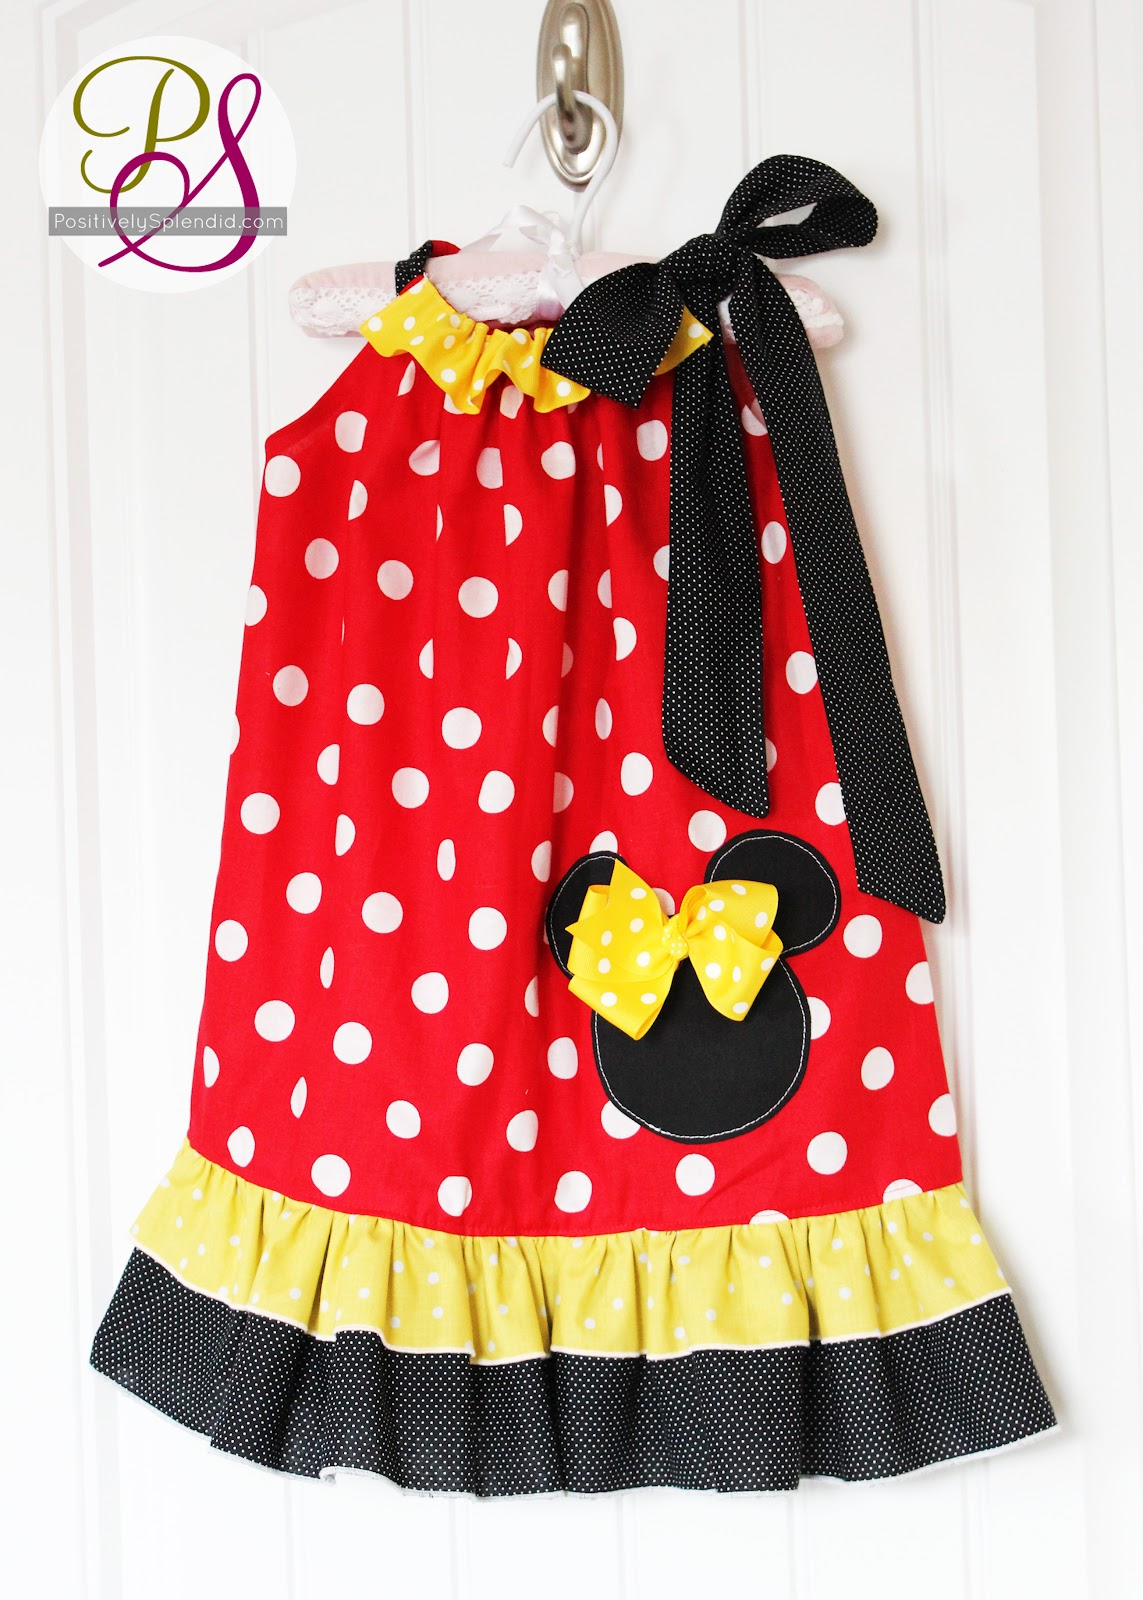 Diy disney outfits for boys and girls for Diy disney shirt template